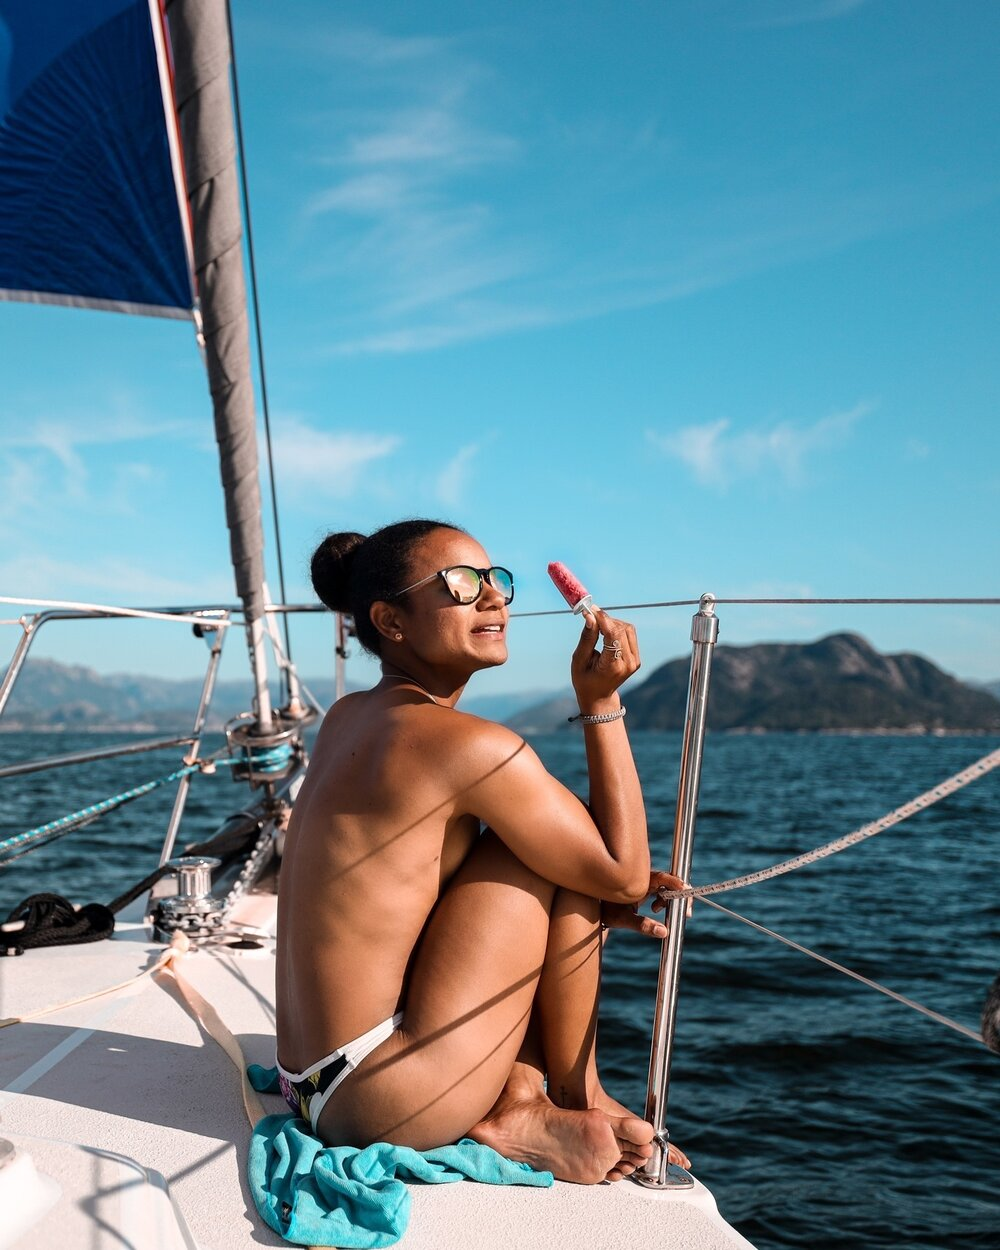 ☀️  Being able to soak up the sun while enjoying the epic view from the bow of my sailboat, with enough wind to fill her sails, is my current definition of